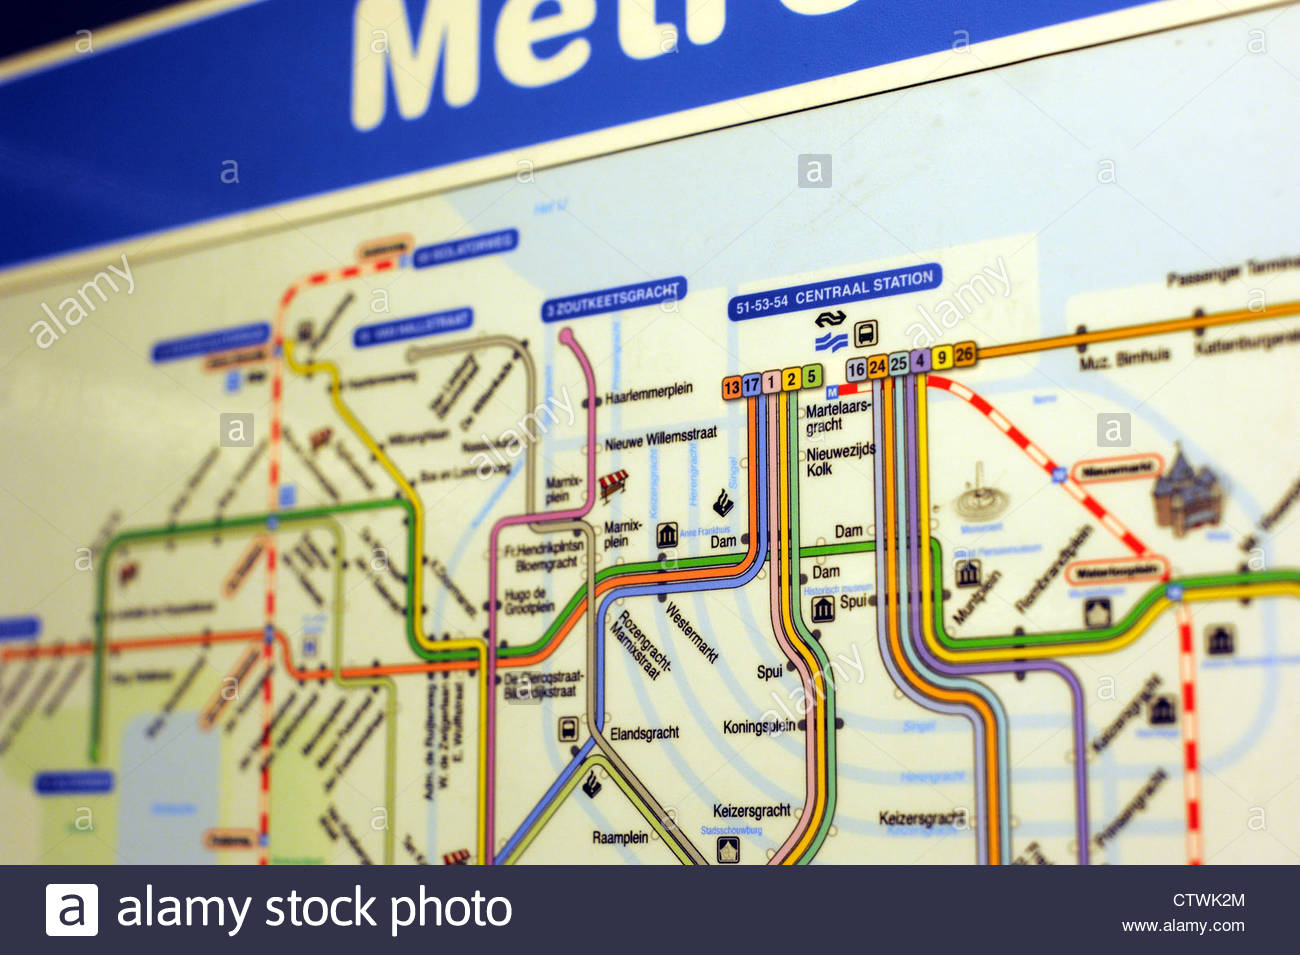 Amsterdam The Netherlands Public transport map on the metro - Stock Image